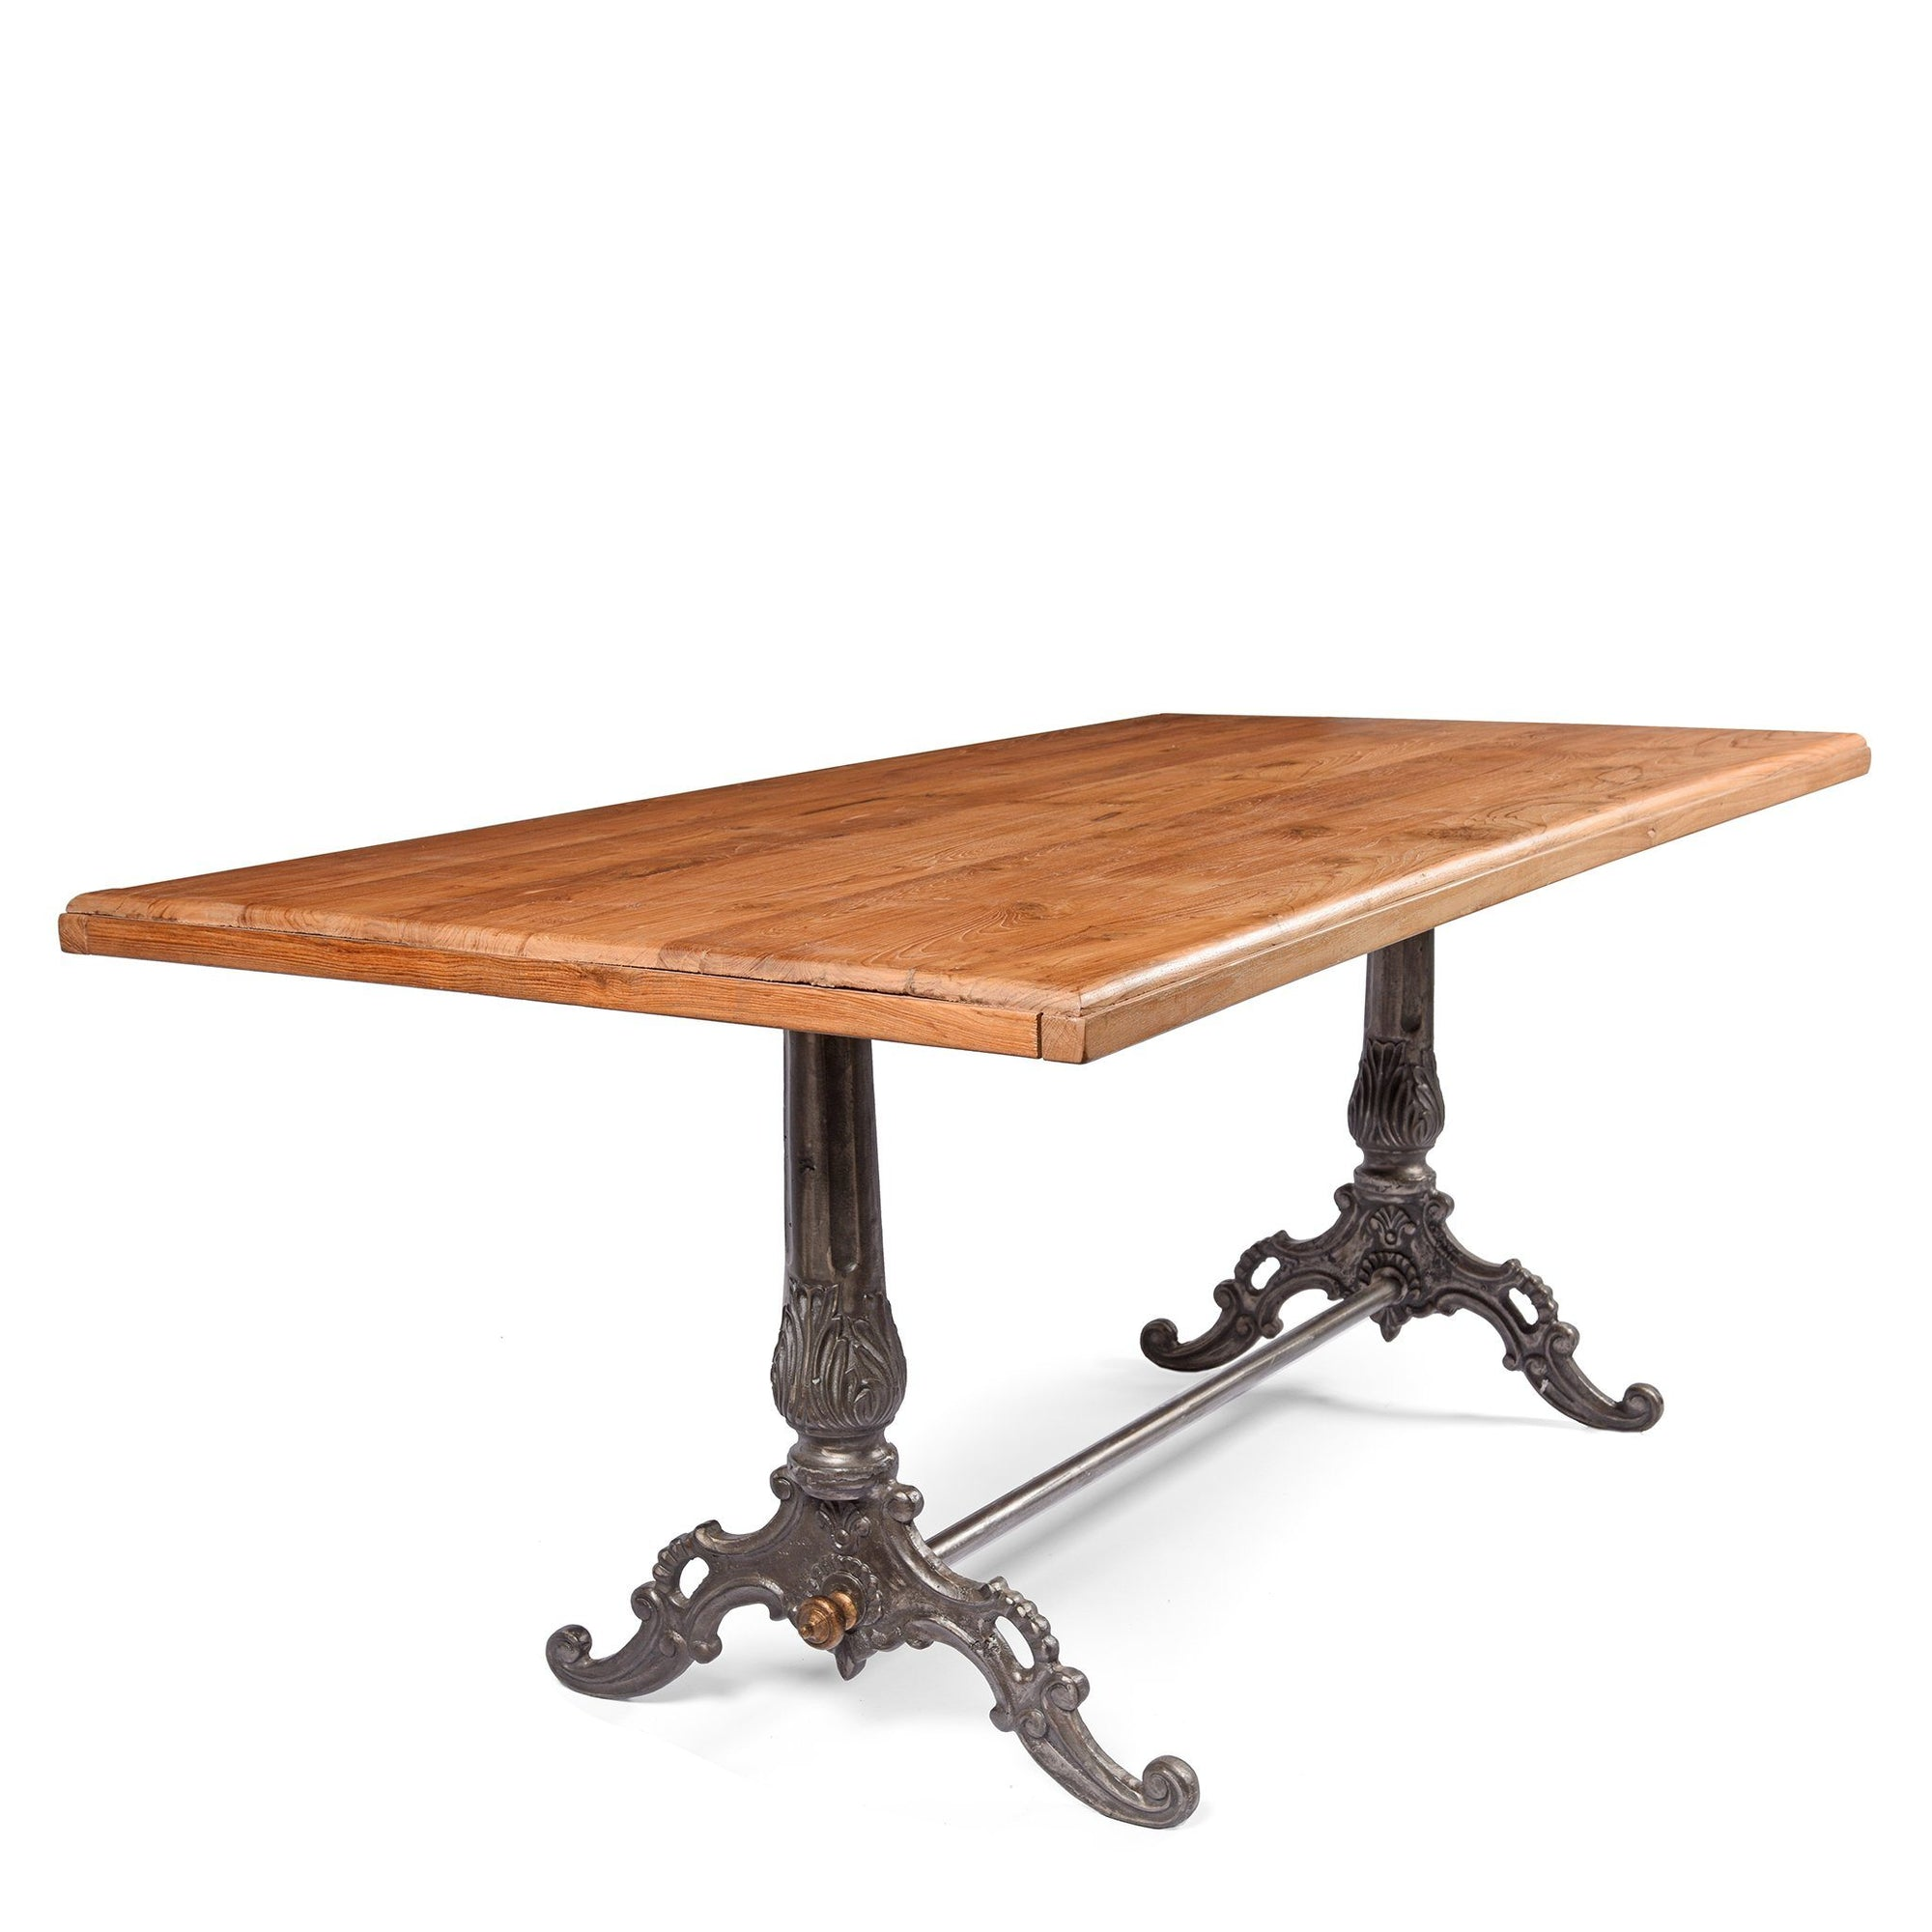 Teak Dining Table With Iron Base - Victorian Style | Indigo Oriental Antiques